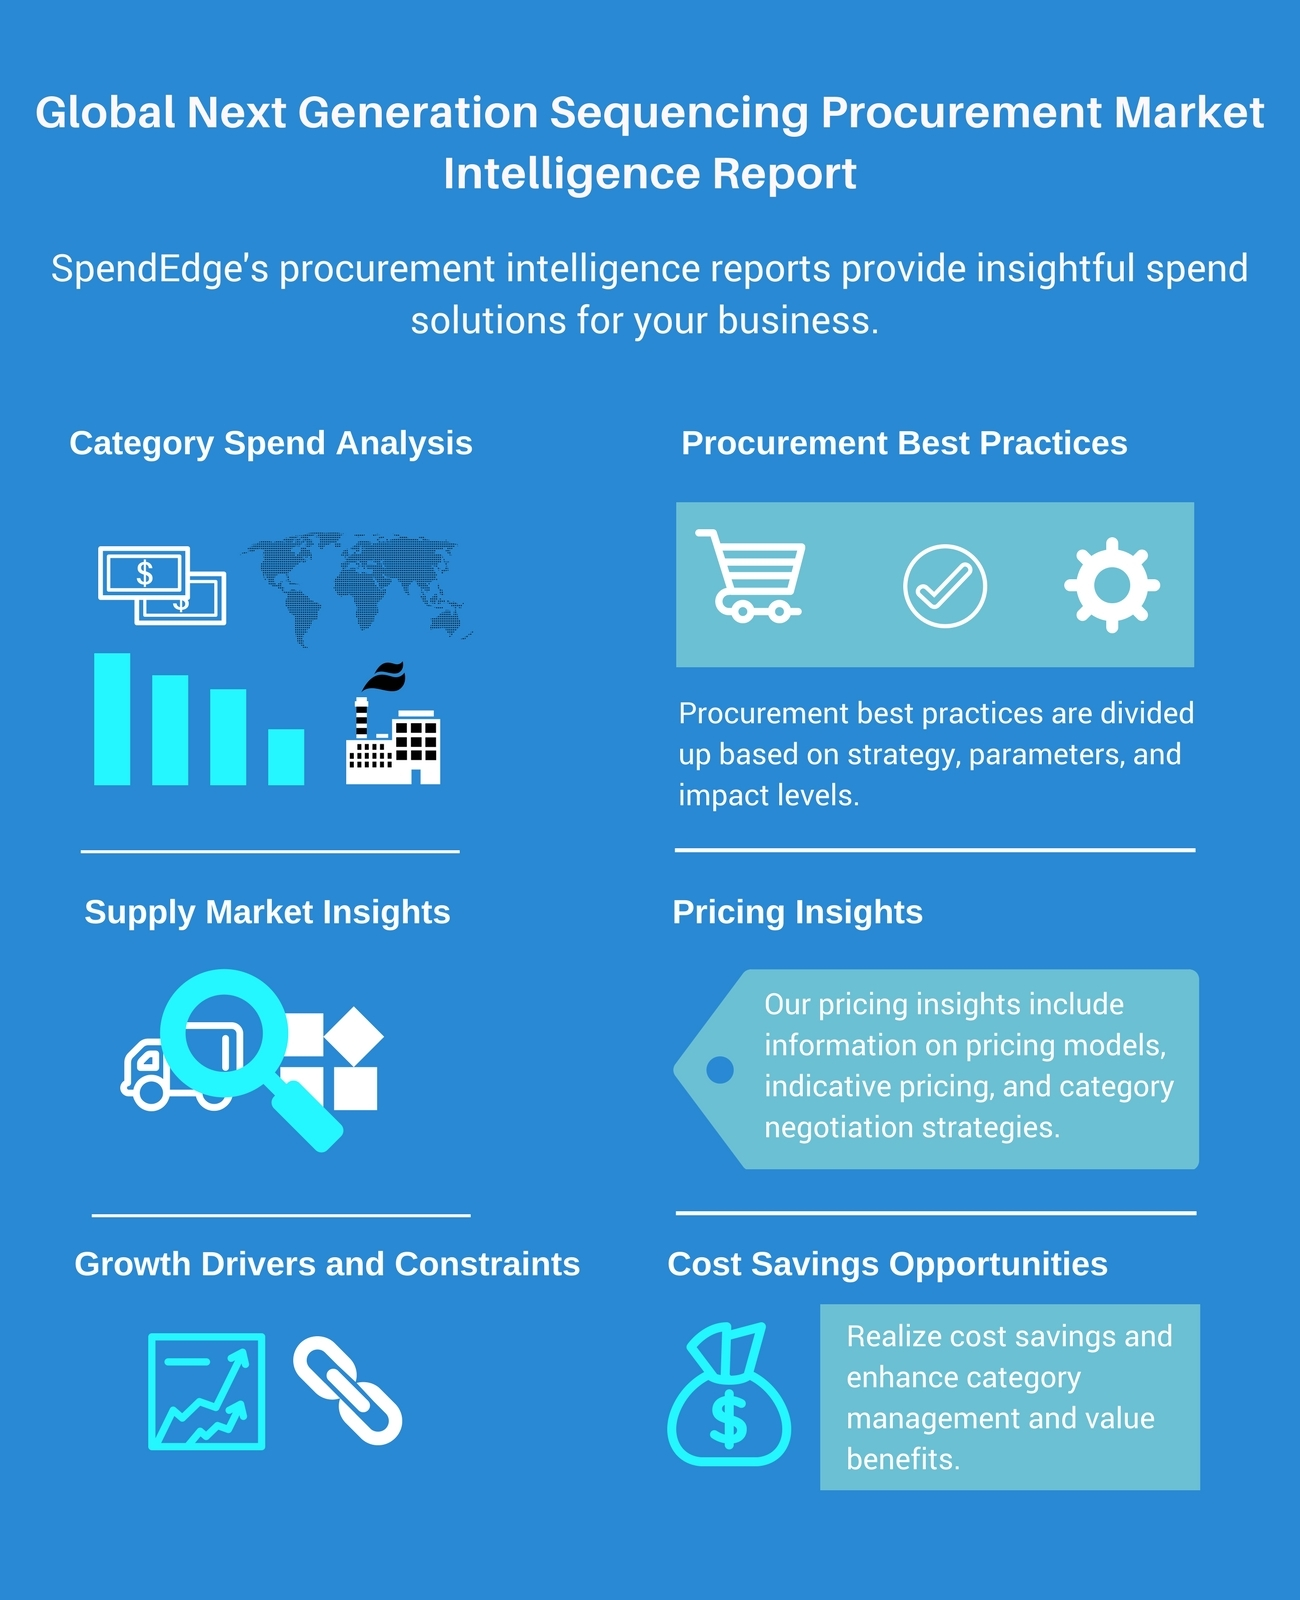 Next Generation Sequencing Procurement Research – Market Trends and Spend Analysis by SpendEdge